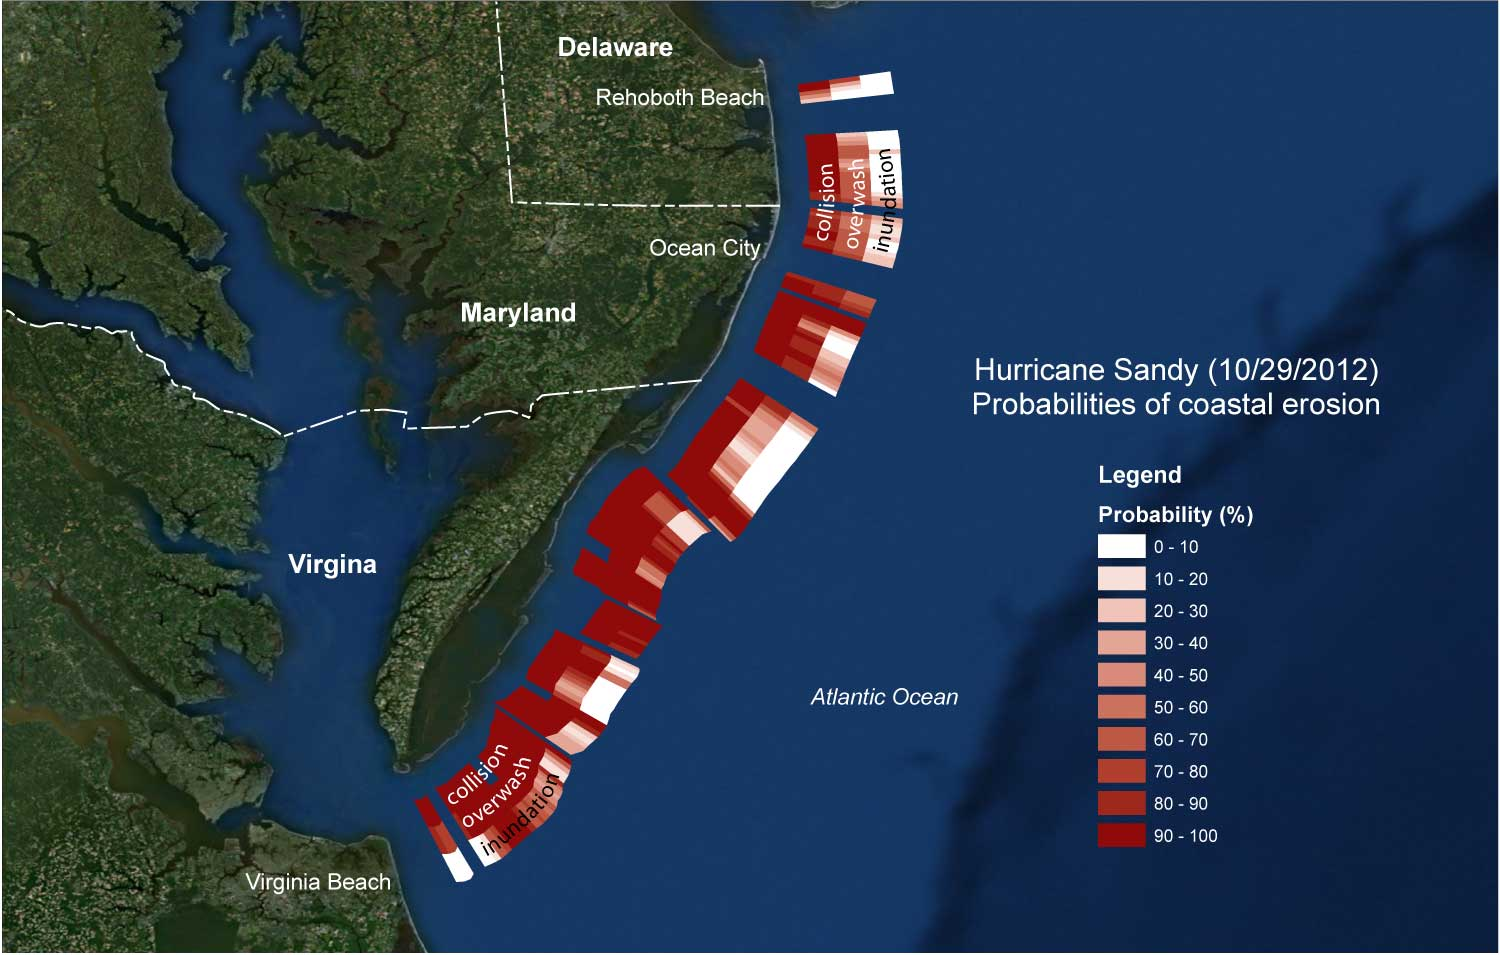 Probabilities of collision, overwash, and inundation for Sandy for the Atlantic coast of Delmarva.